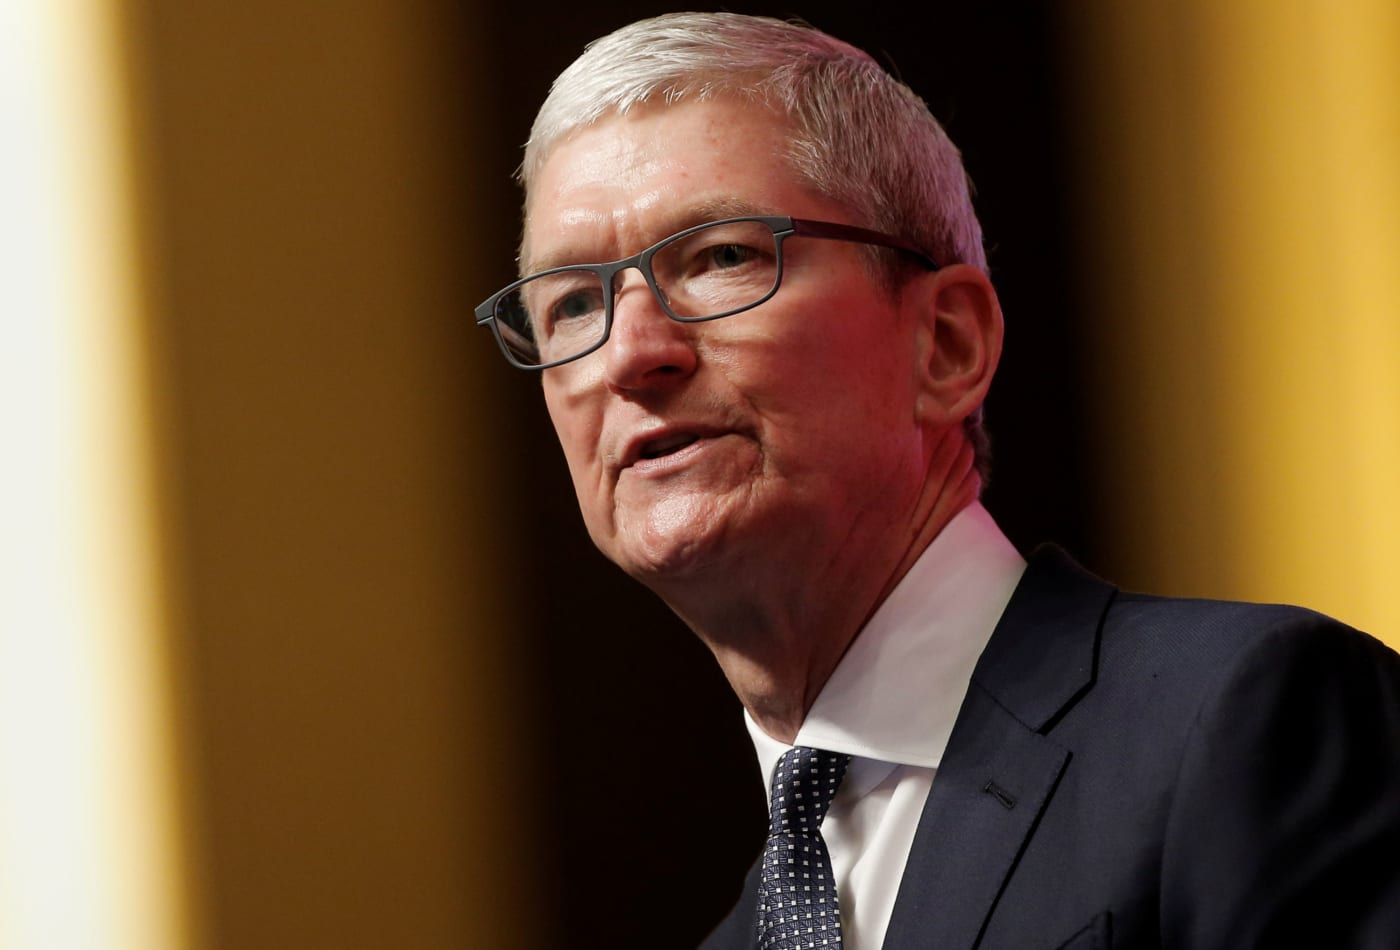 Here's what every major analyst had to say about Apple's big coronavirus warning